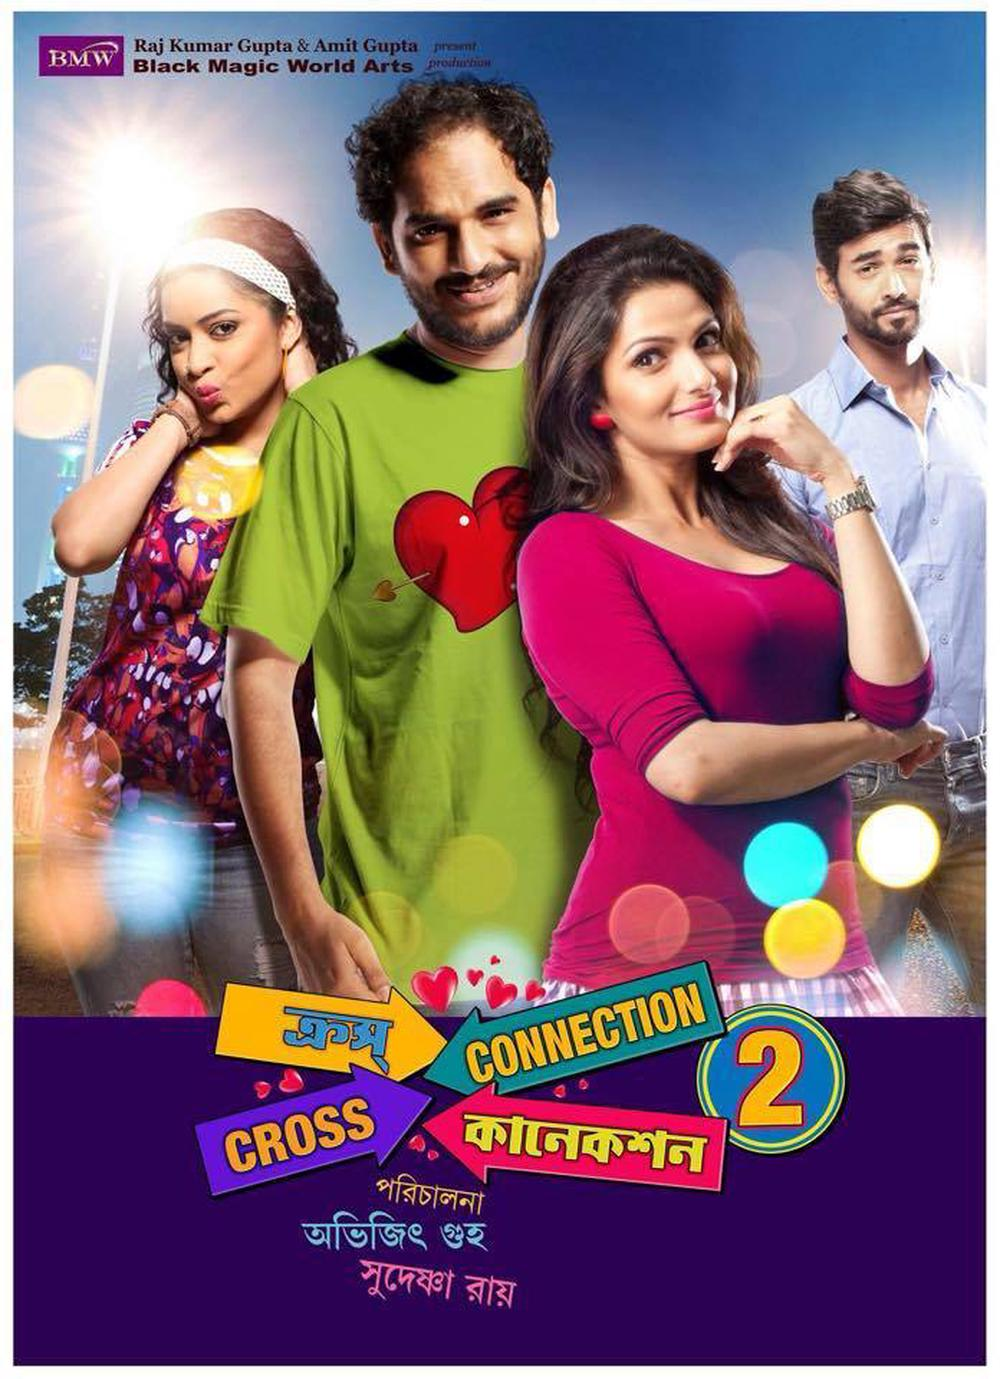 Cross Connection 2 2015 Bengali Movie Web-dl x264 ac3